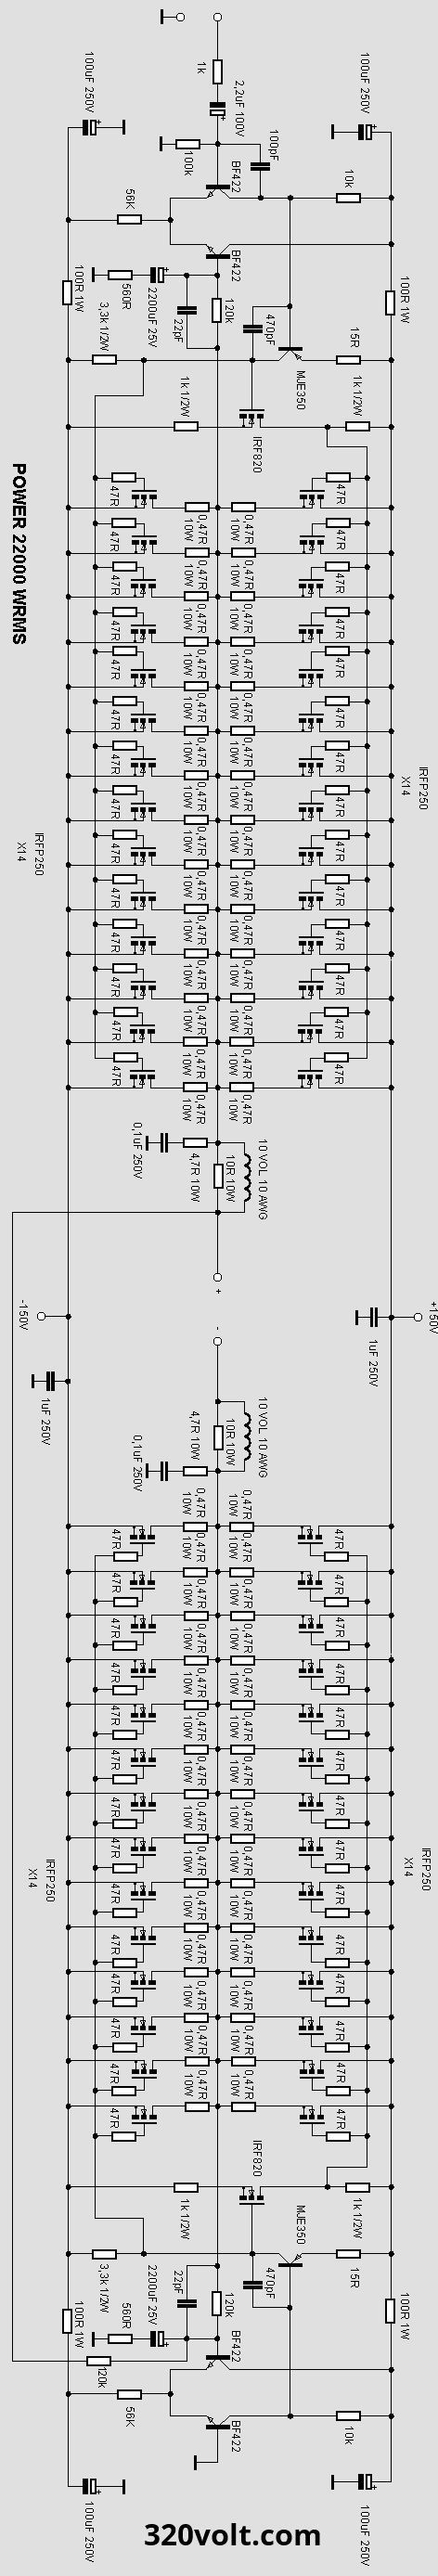 Skema box speaker woofer search results woodworking project ideas - Subwoofer Amplifier 100w Output With Transistor Audio Schematic Pinterest Circuit Diagram Electronics Projects And Audiophile